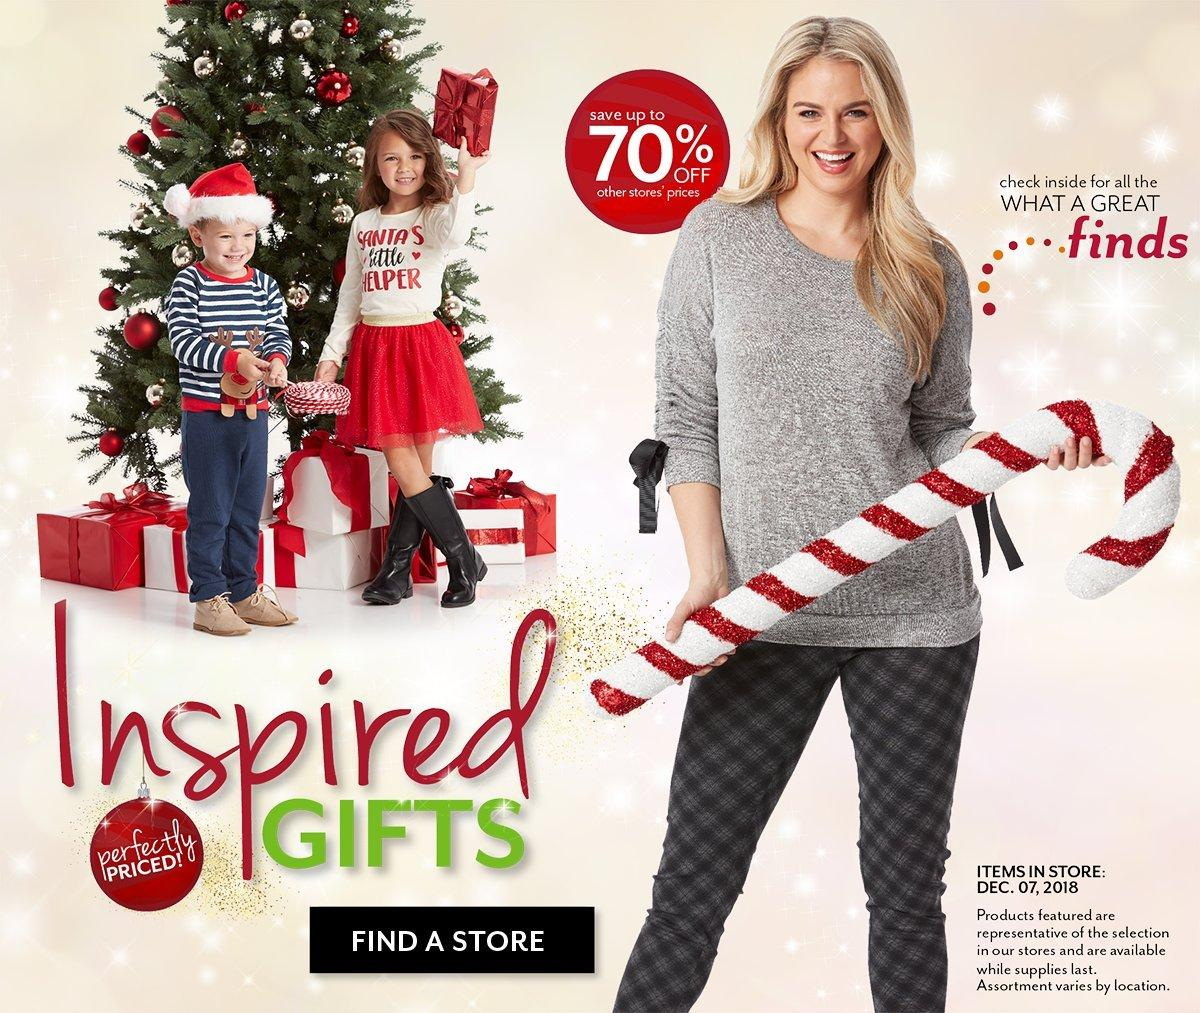 Shop everything on their Christmas Wish Lists at Bealls Outlet